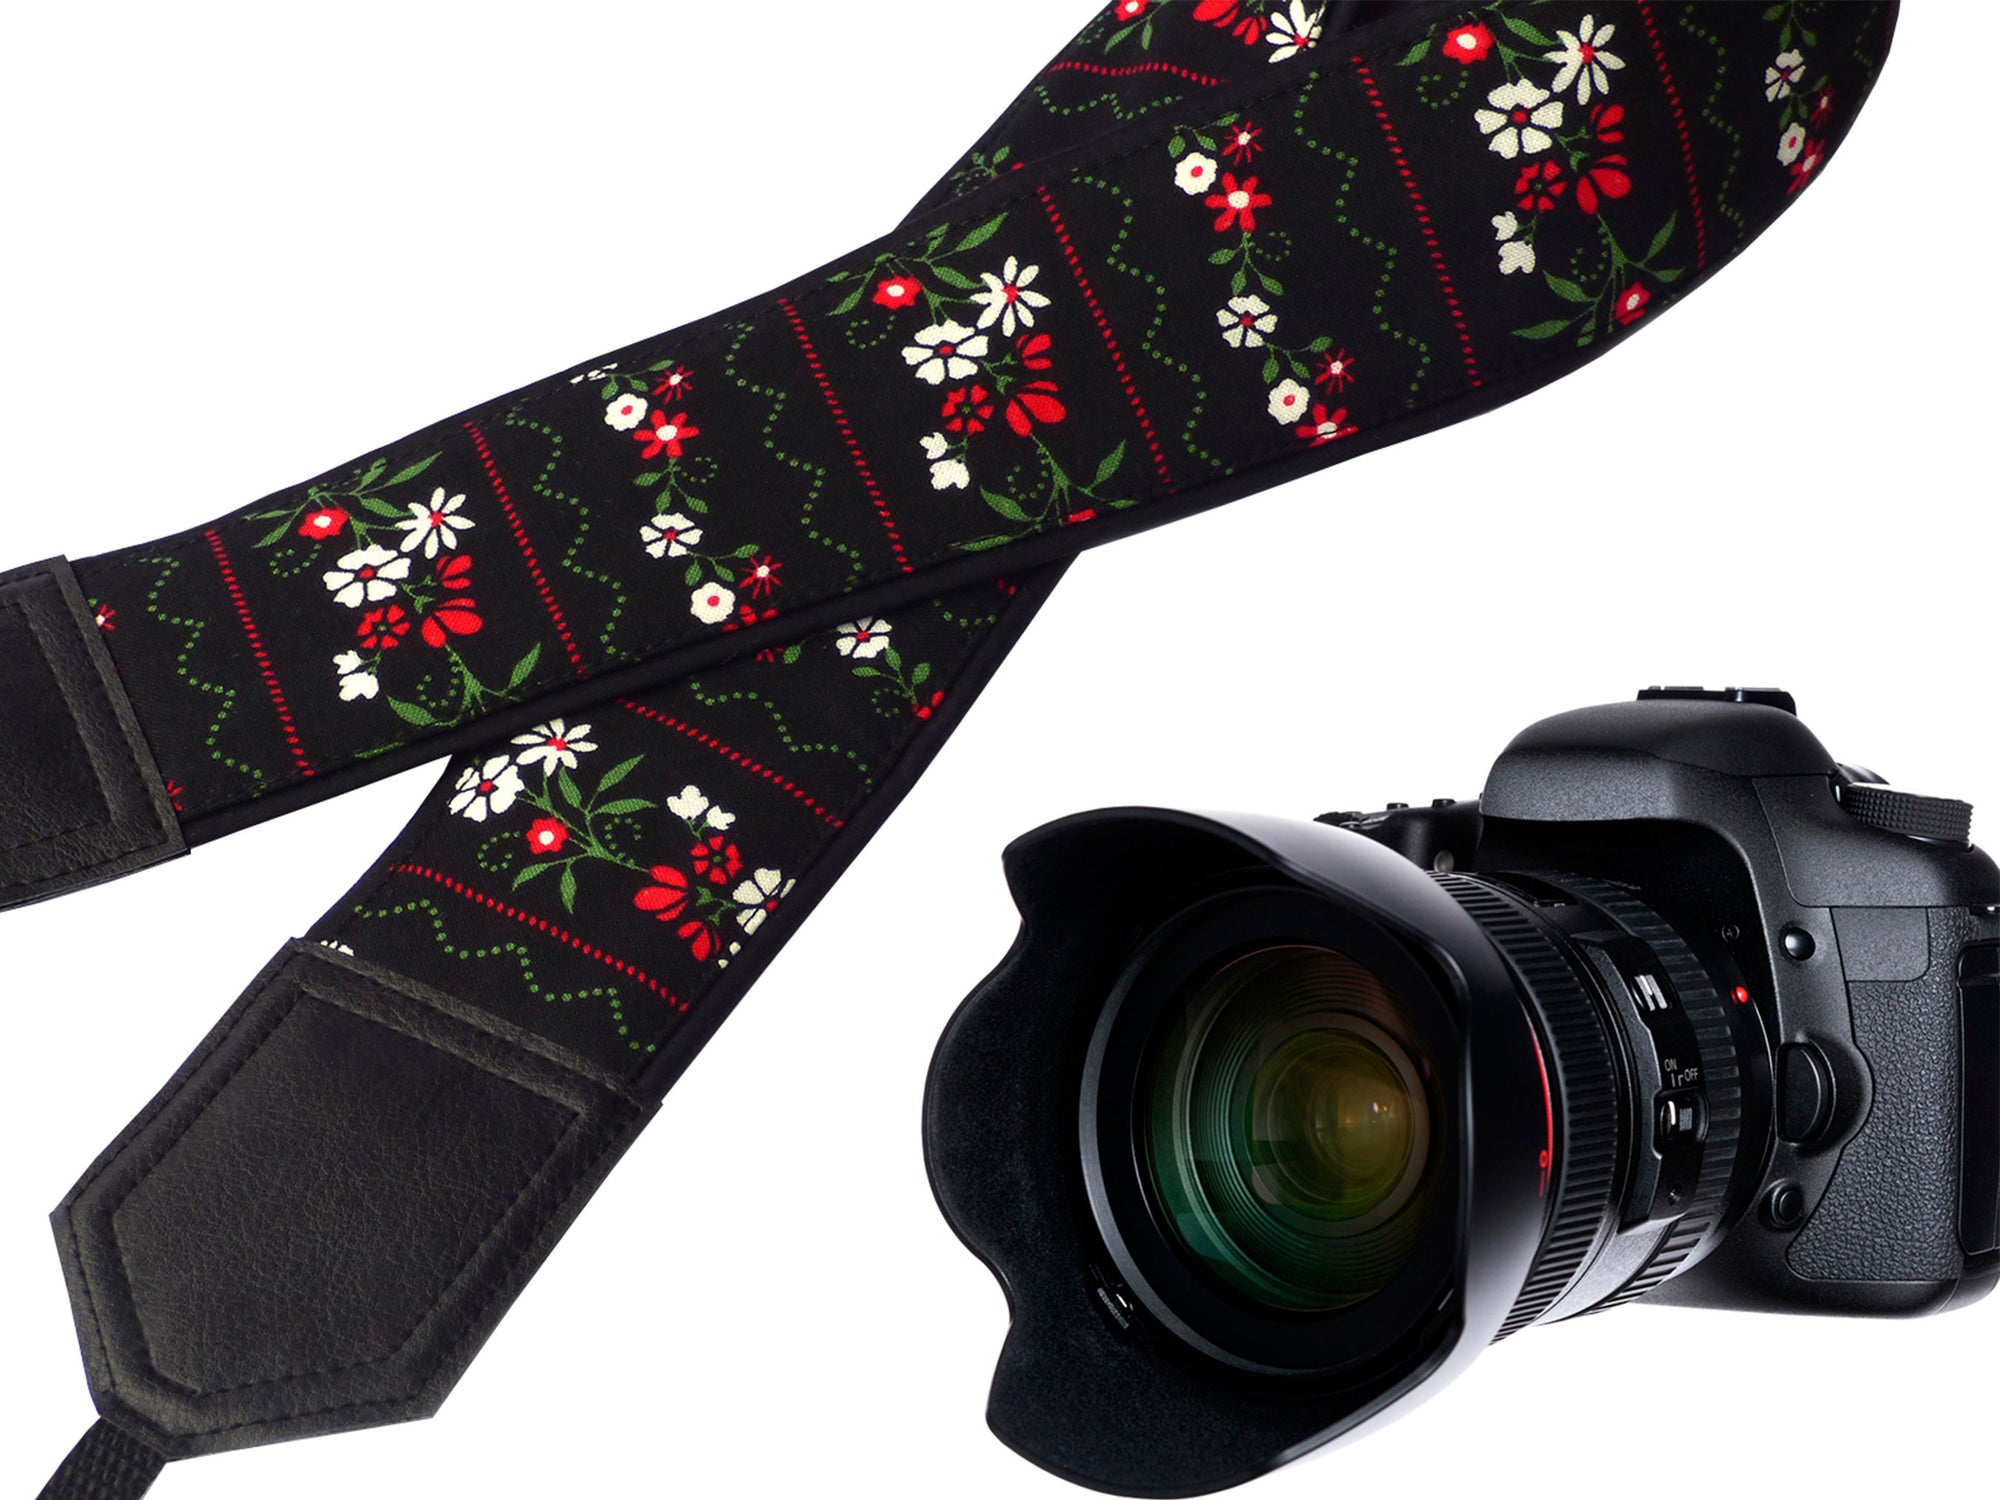 Flowers Camera strap.  Black Camera Strap DSLR / SLR. Camera accessories. Durable, light weight and well padded camera straps.